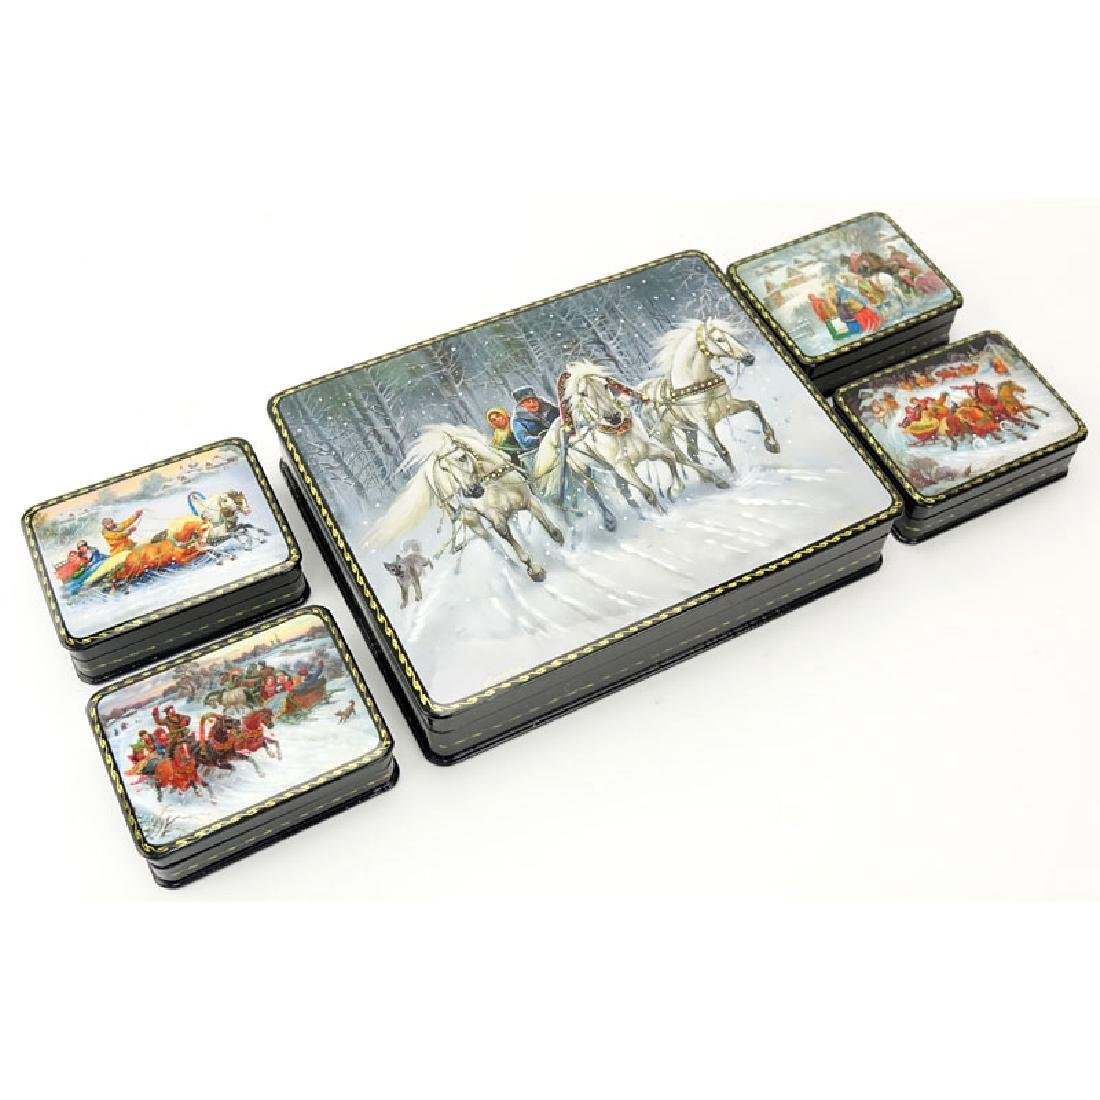 Large Russian Lacquer Box with Four (4) Smaller Boxes